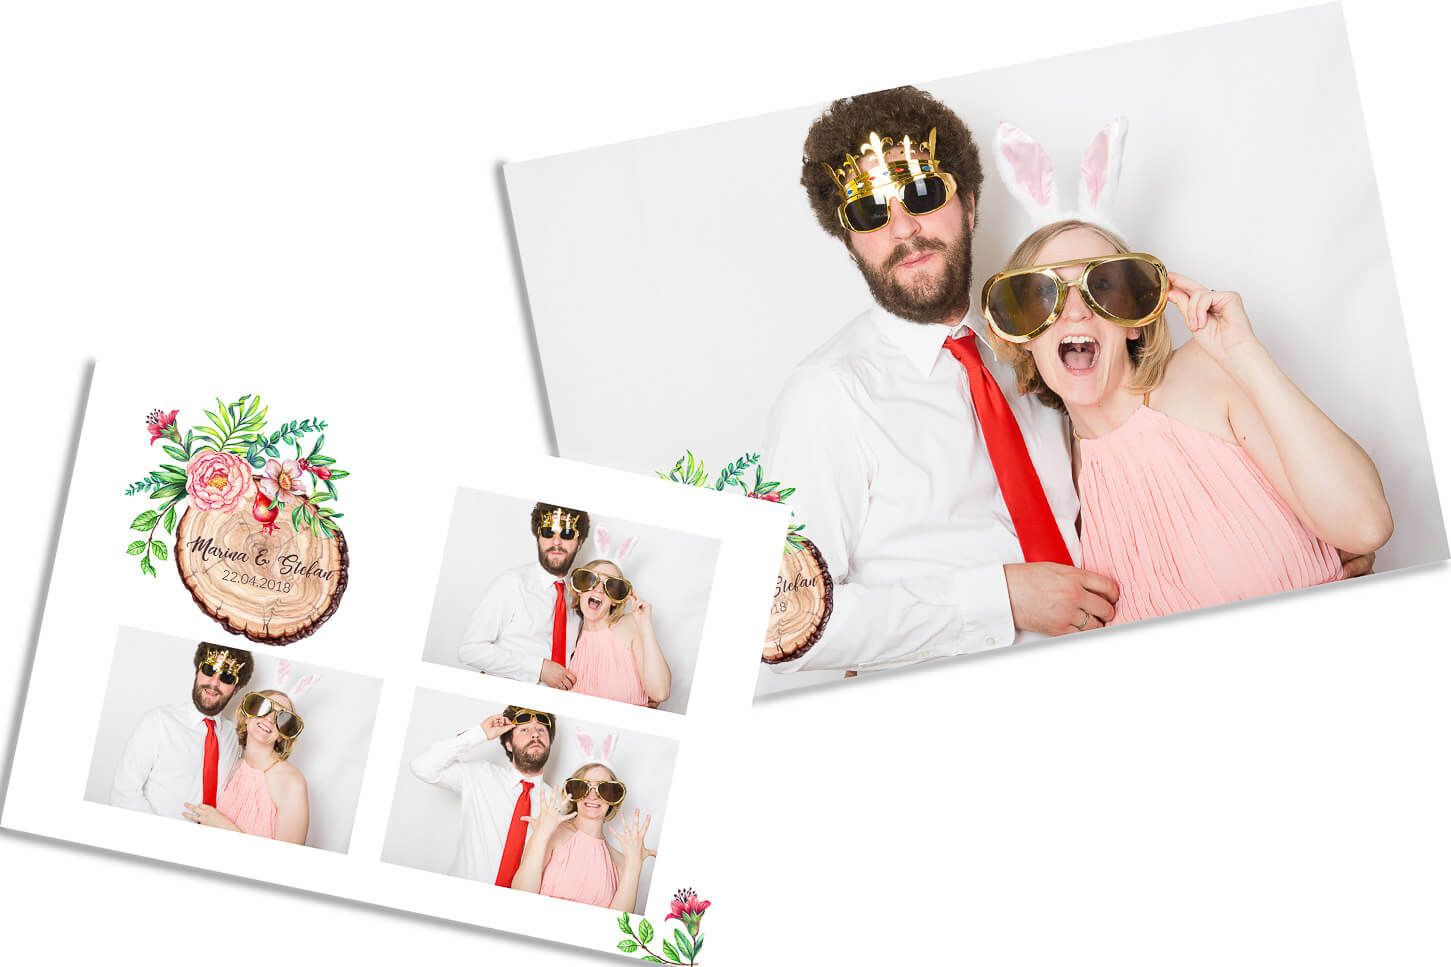 Fotobox photobooth videobooth layout hochzeitslogo